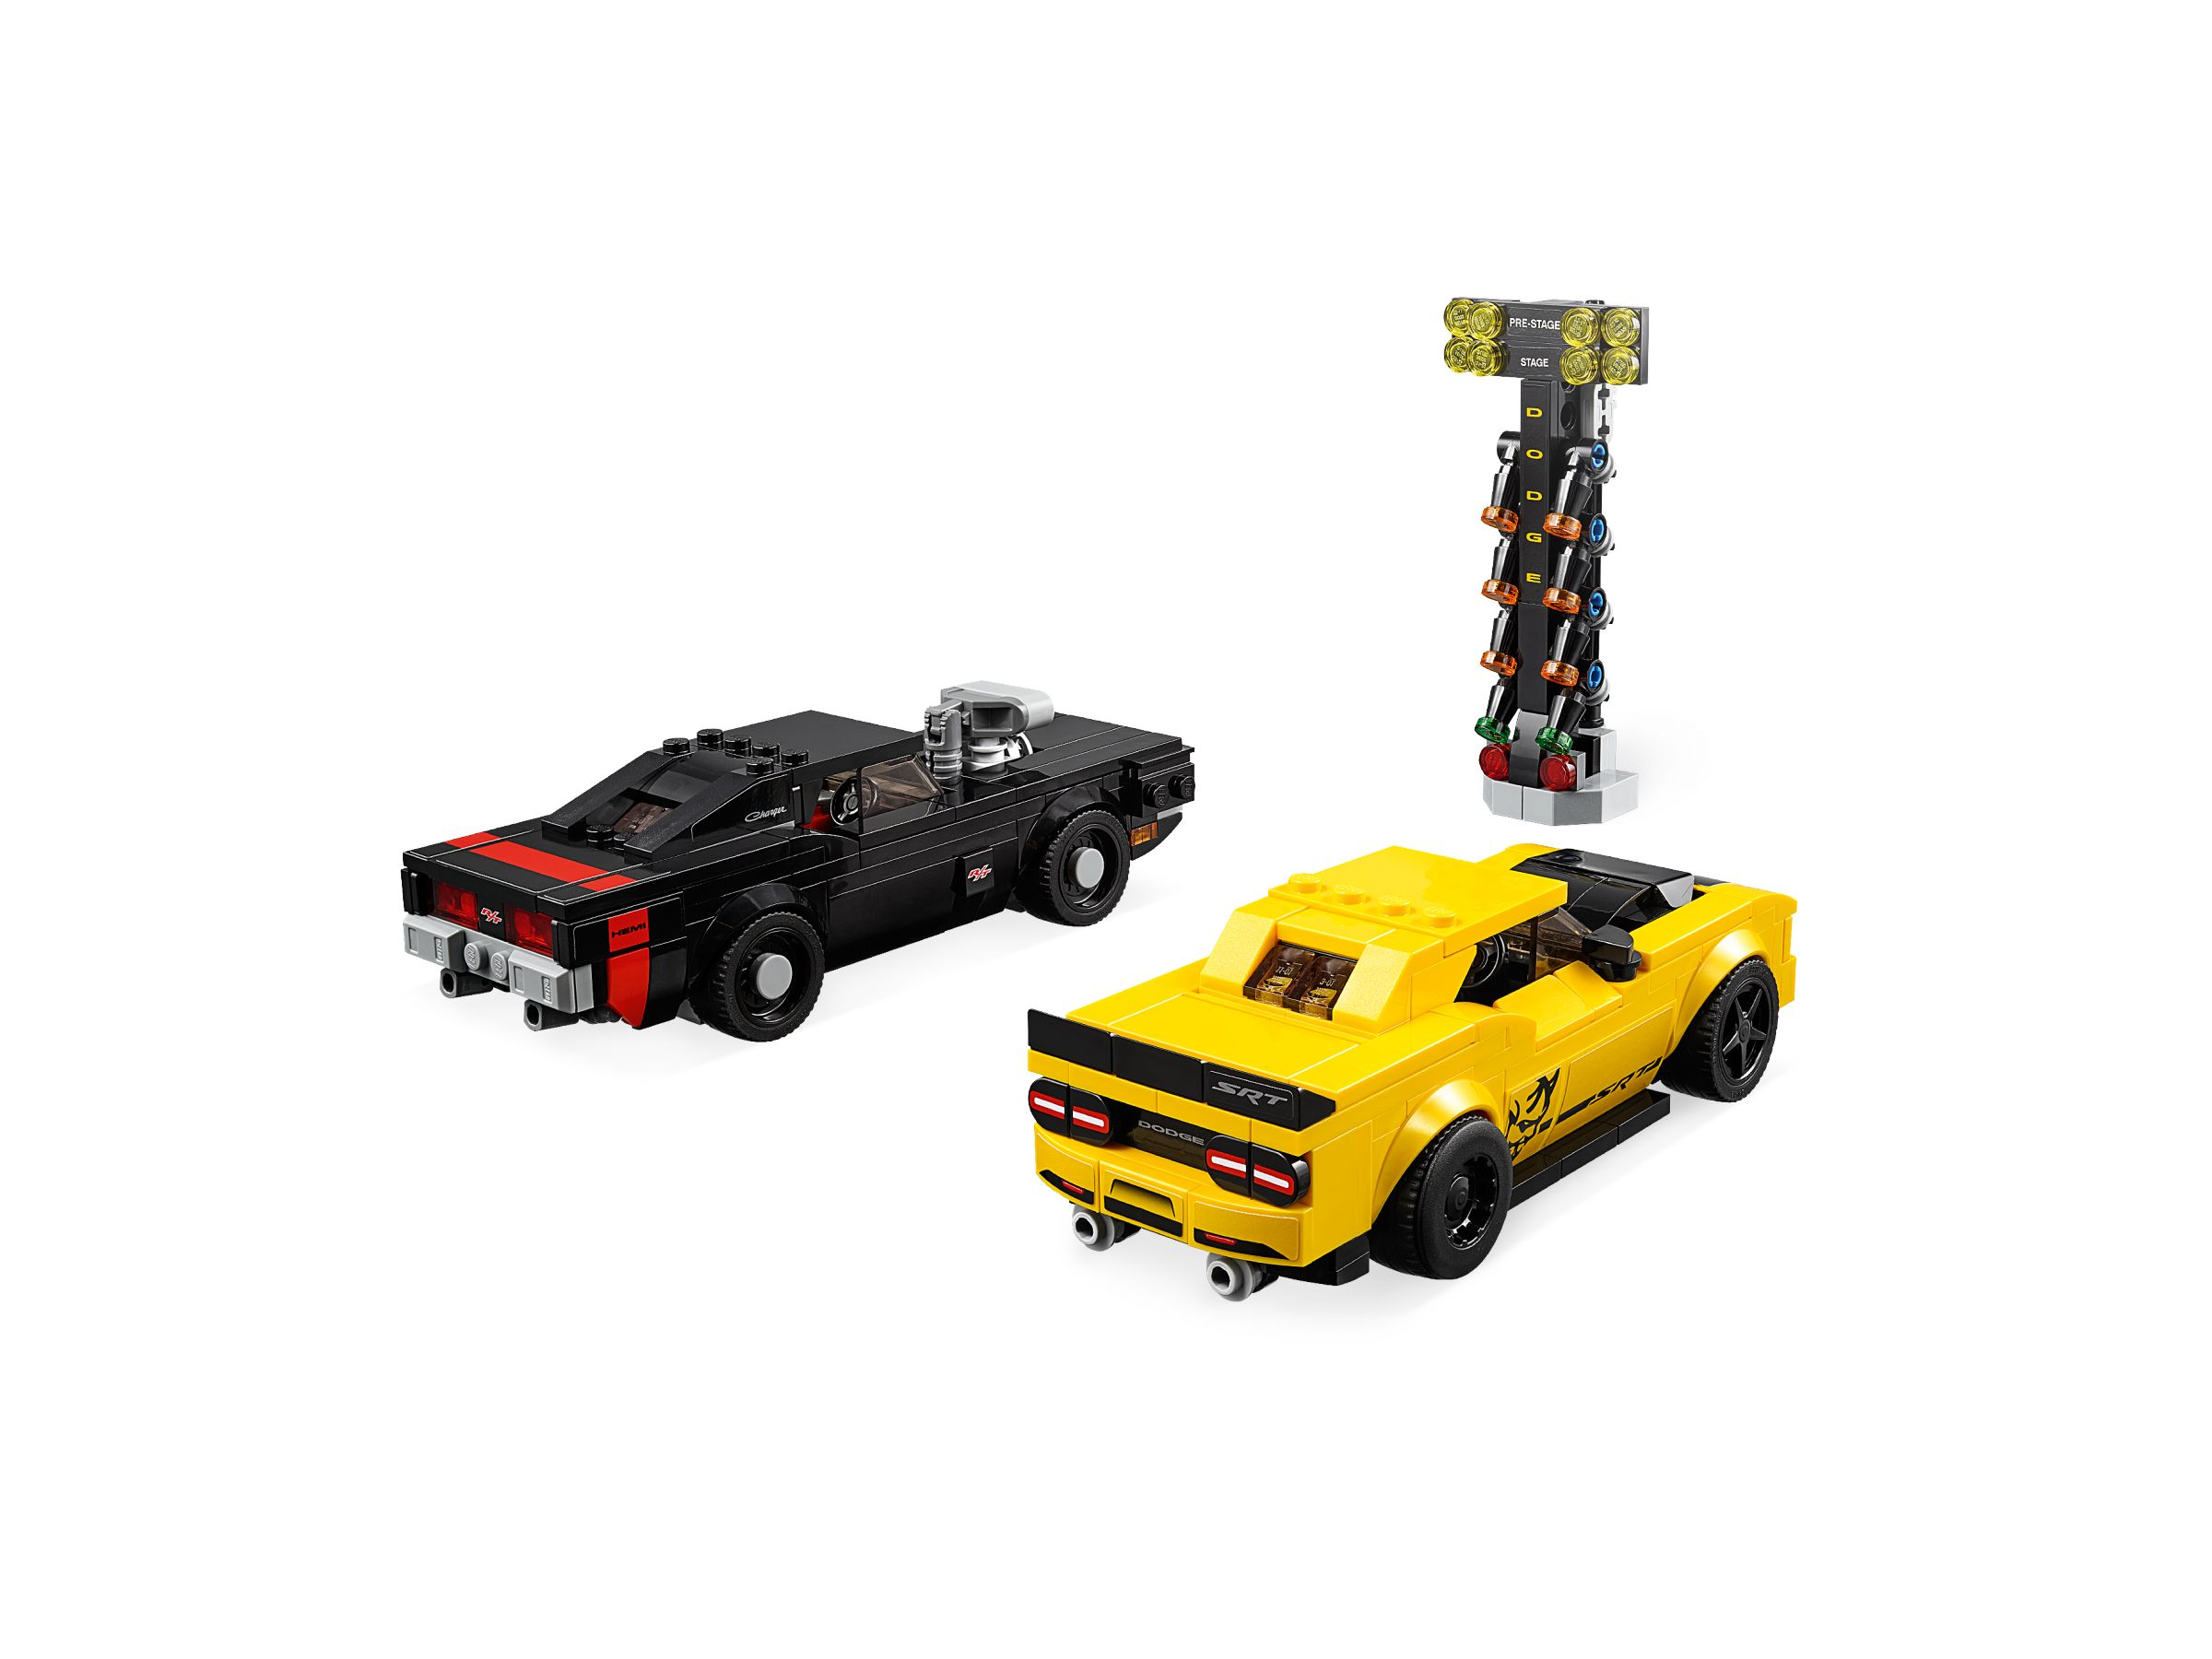 LEGO Speed Champions 75893 2018 Dodge Challenger SRT Demon und 1970 Dodge Charger R/T LEGO_75893_alt3.jpg